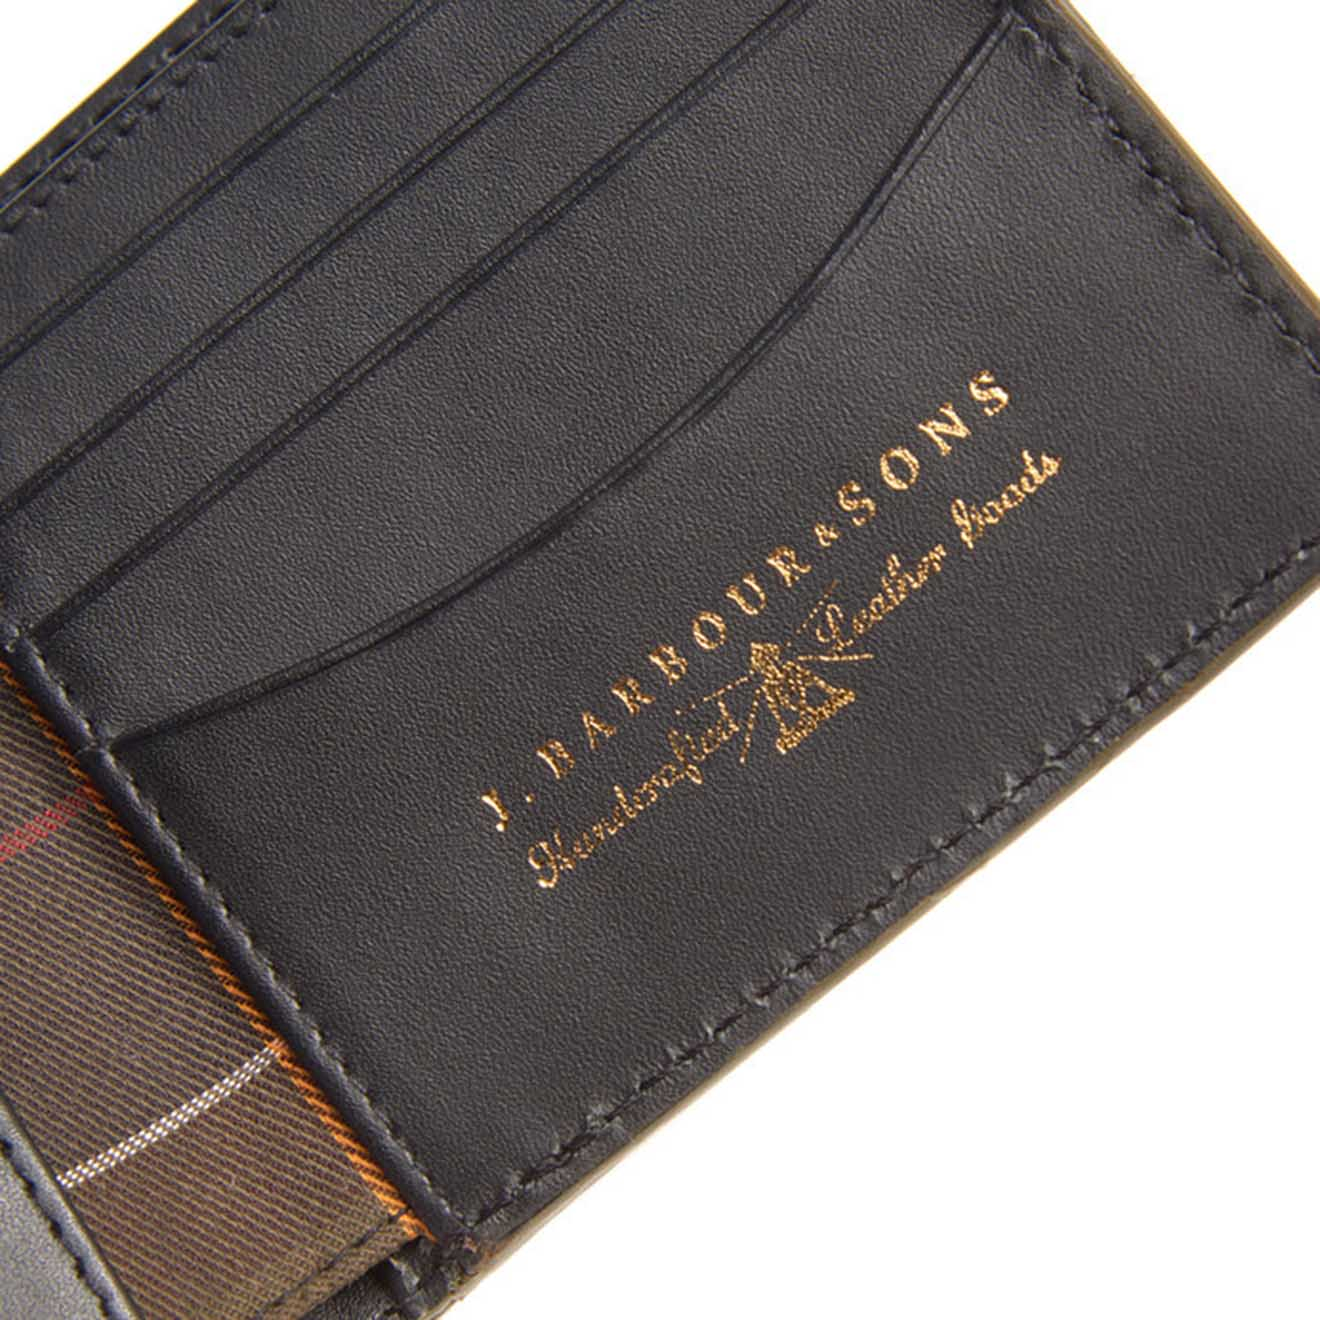 47c978ab Barbour Grain Leather Billfold Wallet Black - Parasol Store